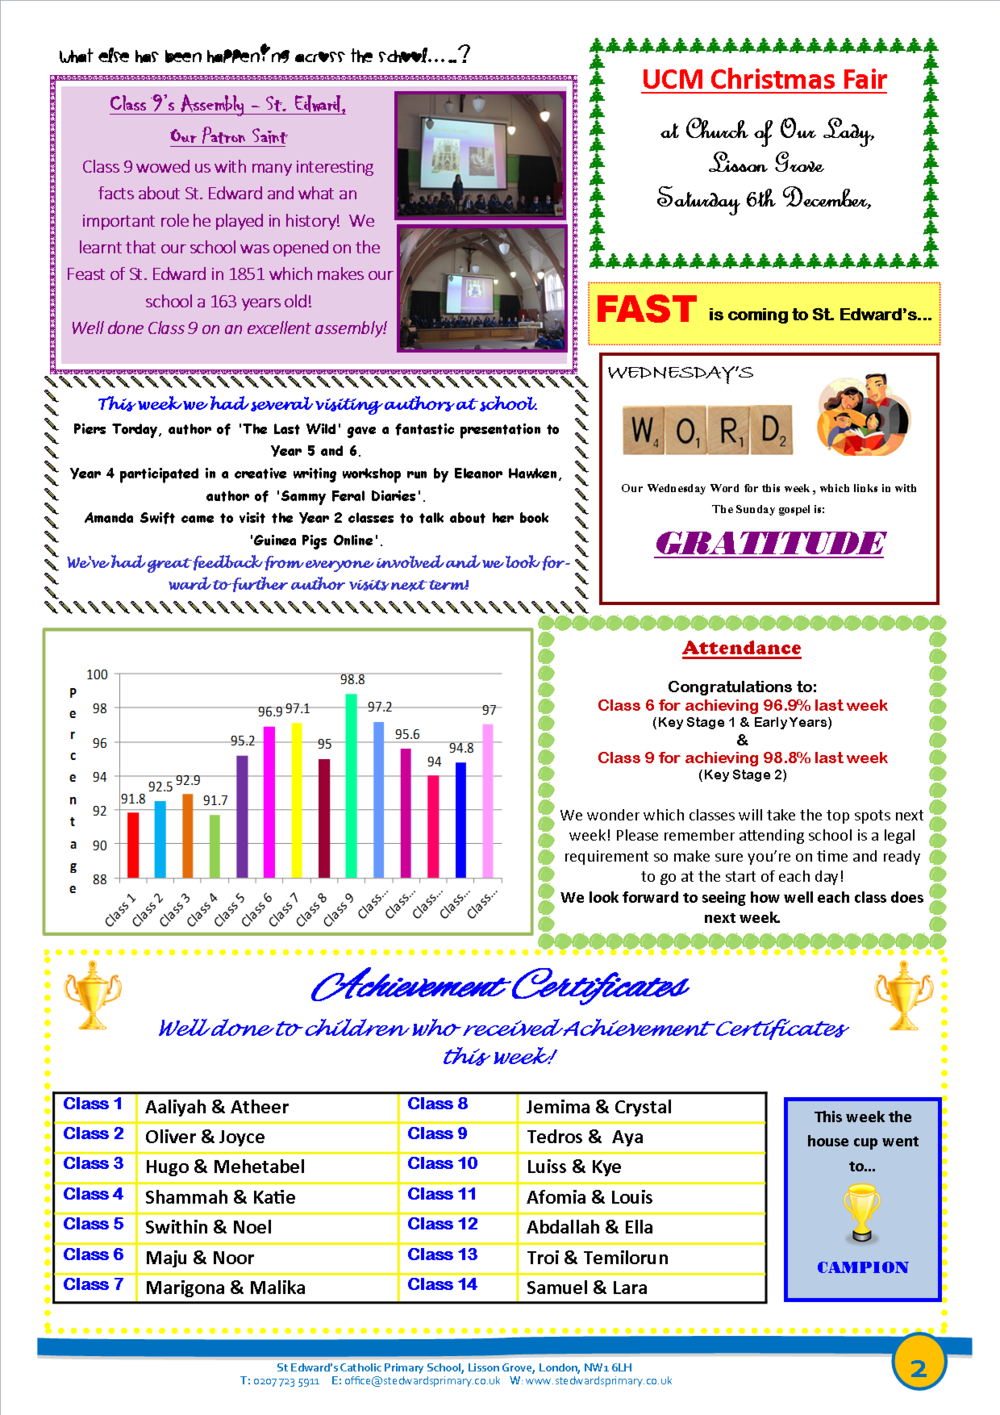 St Edward's Newsletter Issue 6 17 October 2014 1.png